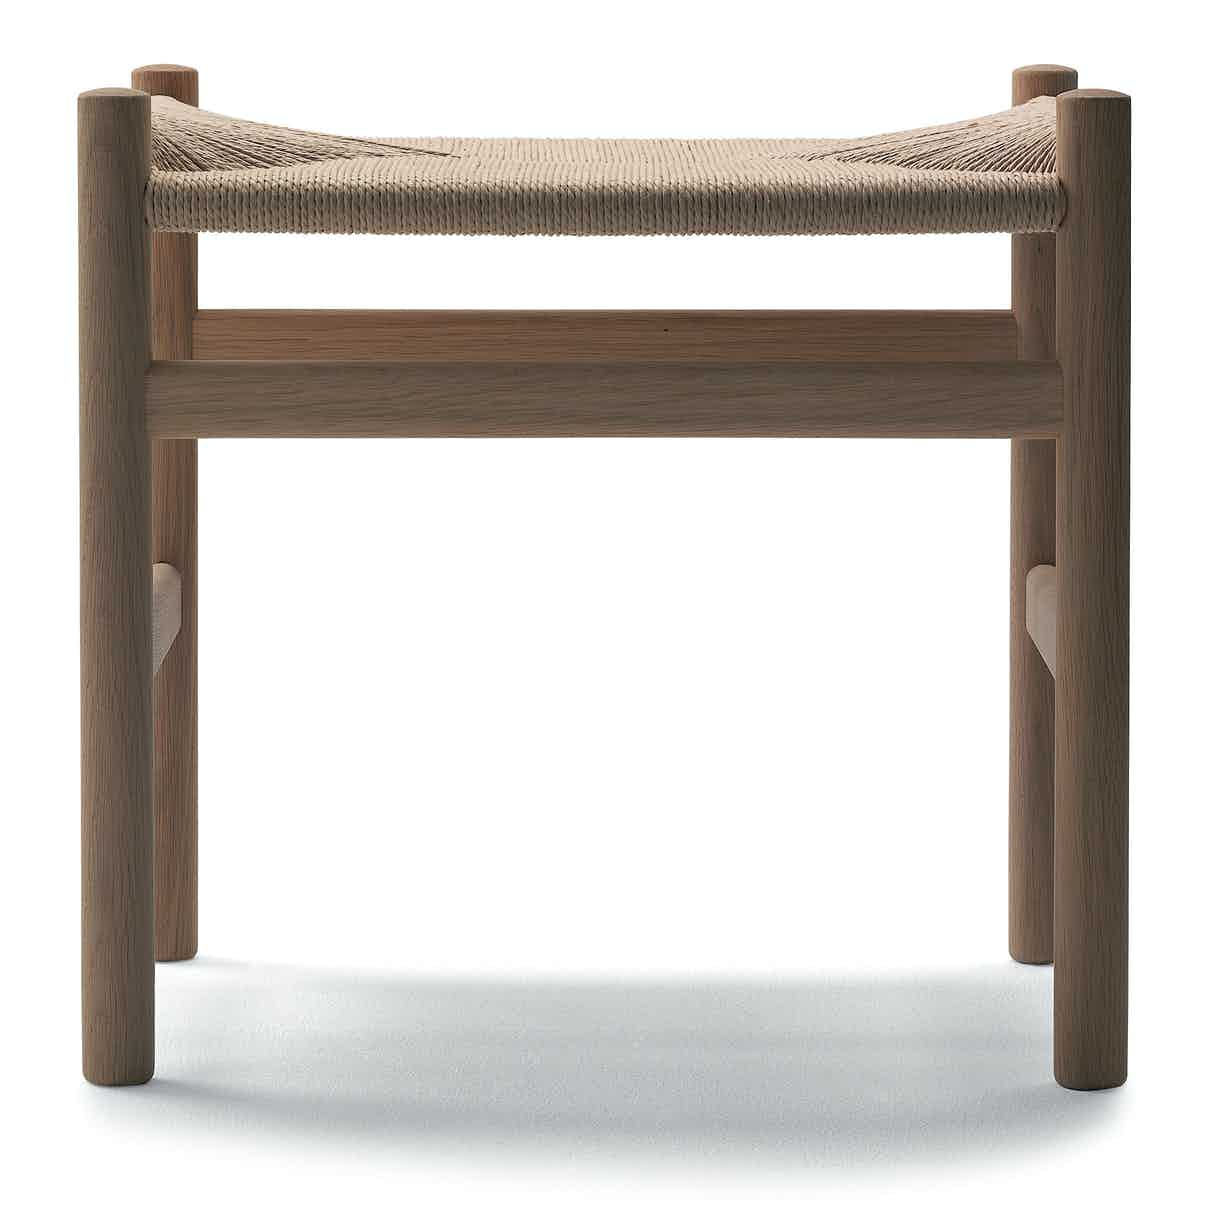 Carl-hansen-son-stool-ch53-haute-living